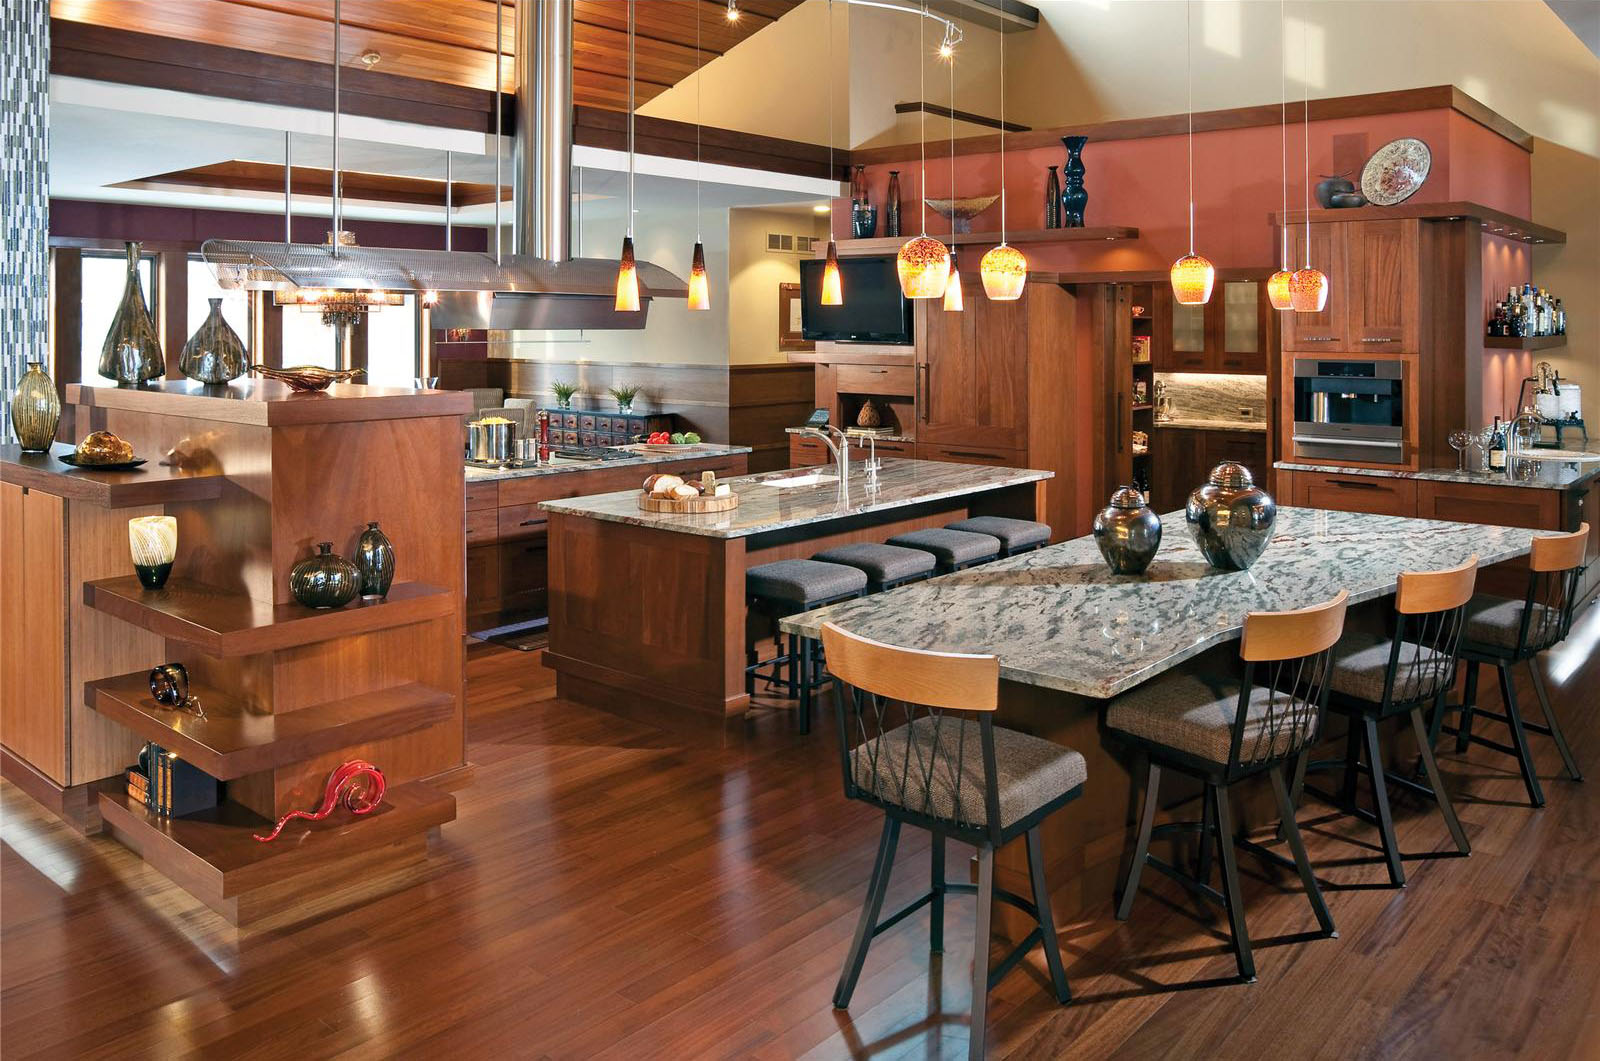 Incredible Open Kitchen Design 1600 x 1061 · 333 kB · jpeg